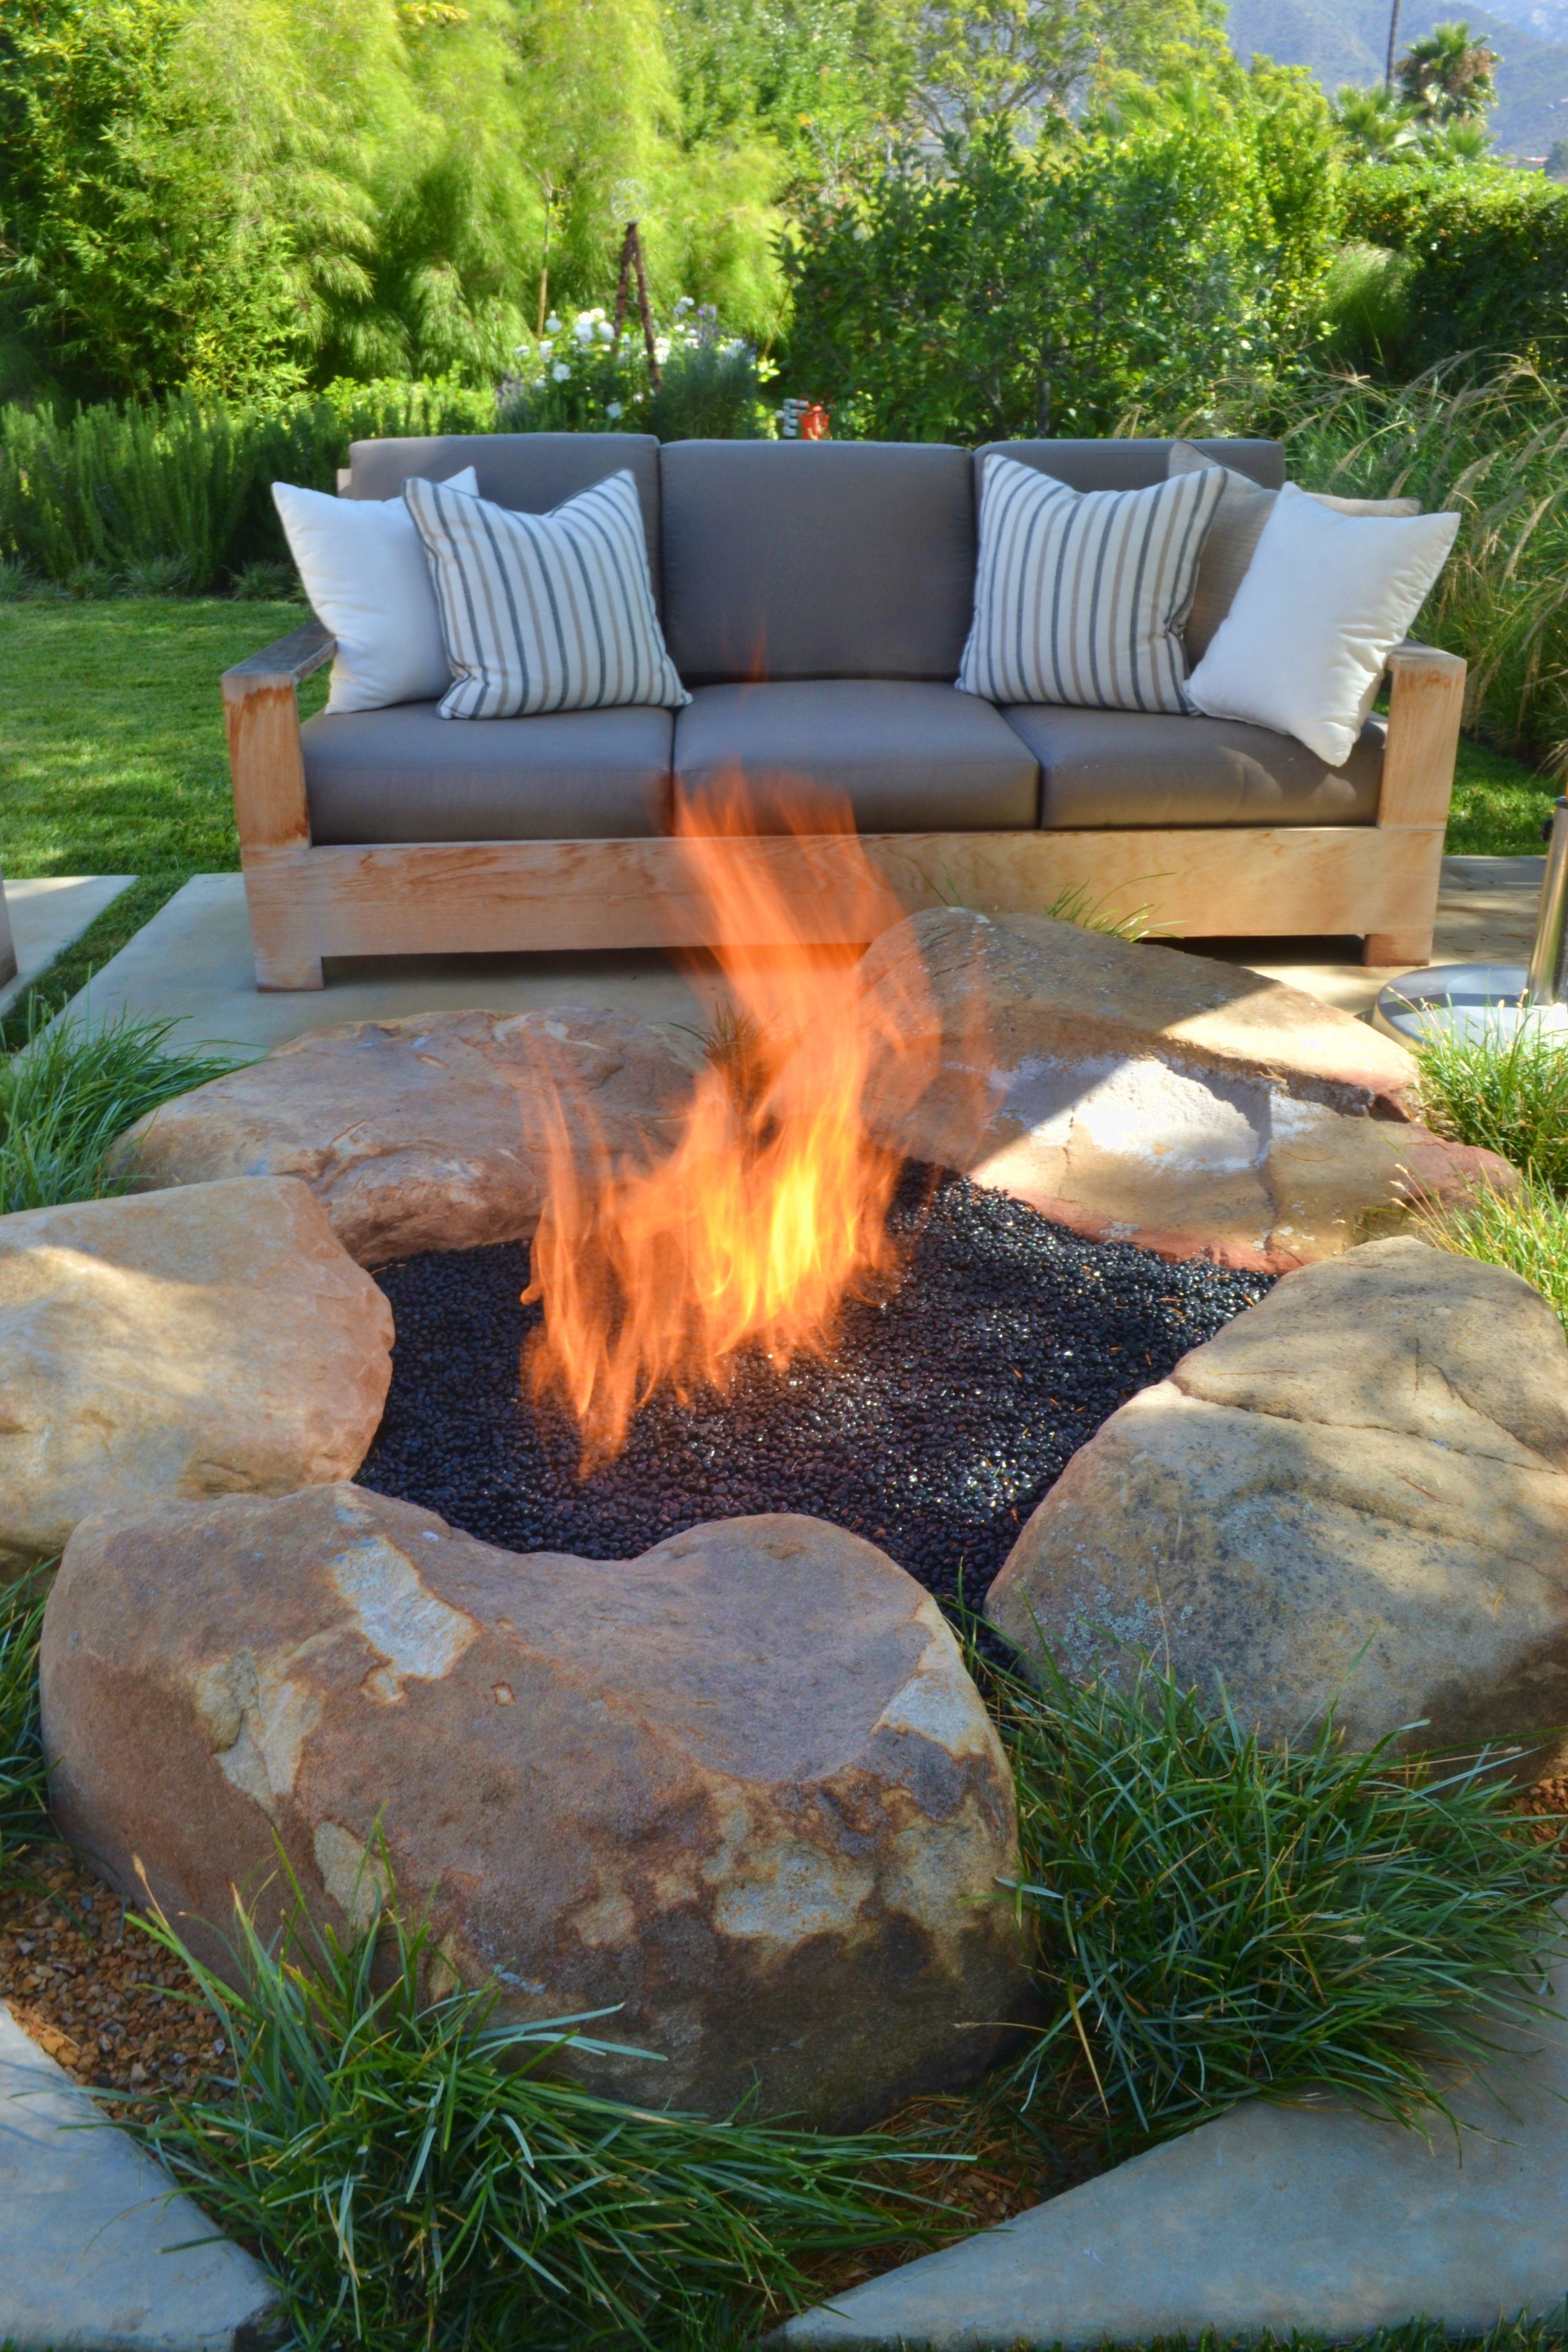 Boulder Firepit Love This Idea Much Easier Than Trying To Build